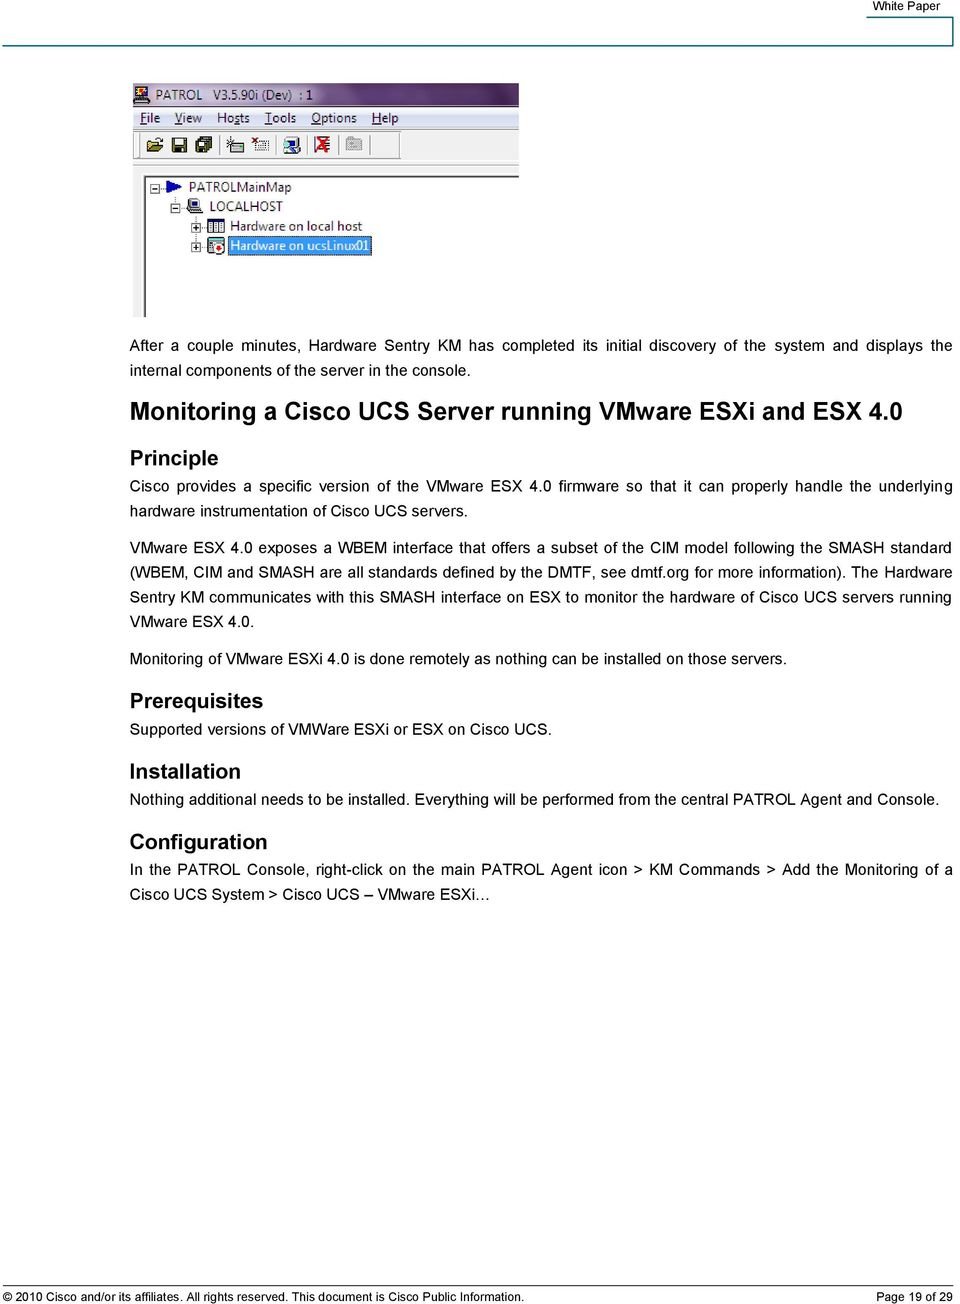 0 firmware so that it can properly handle the underlying hardware instrumentation of Cisco UCS servers. VMware ESX 4.